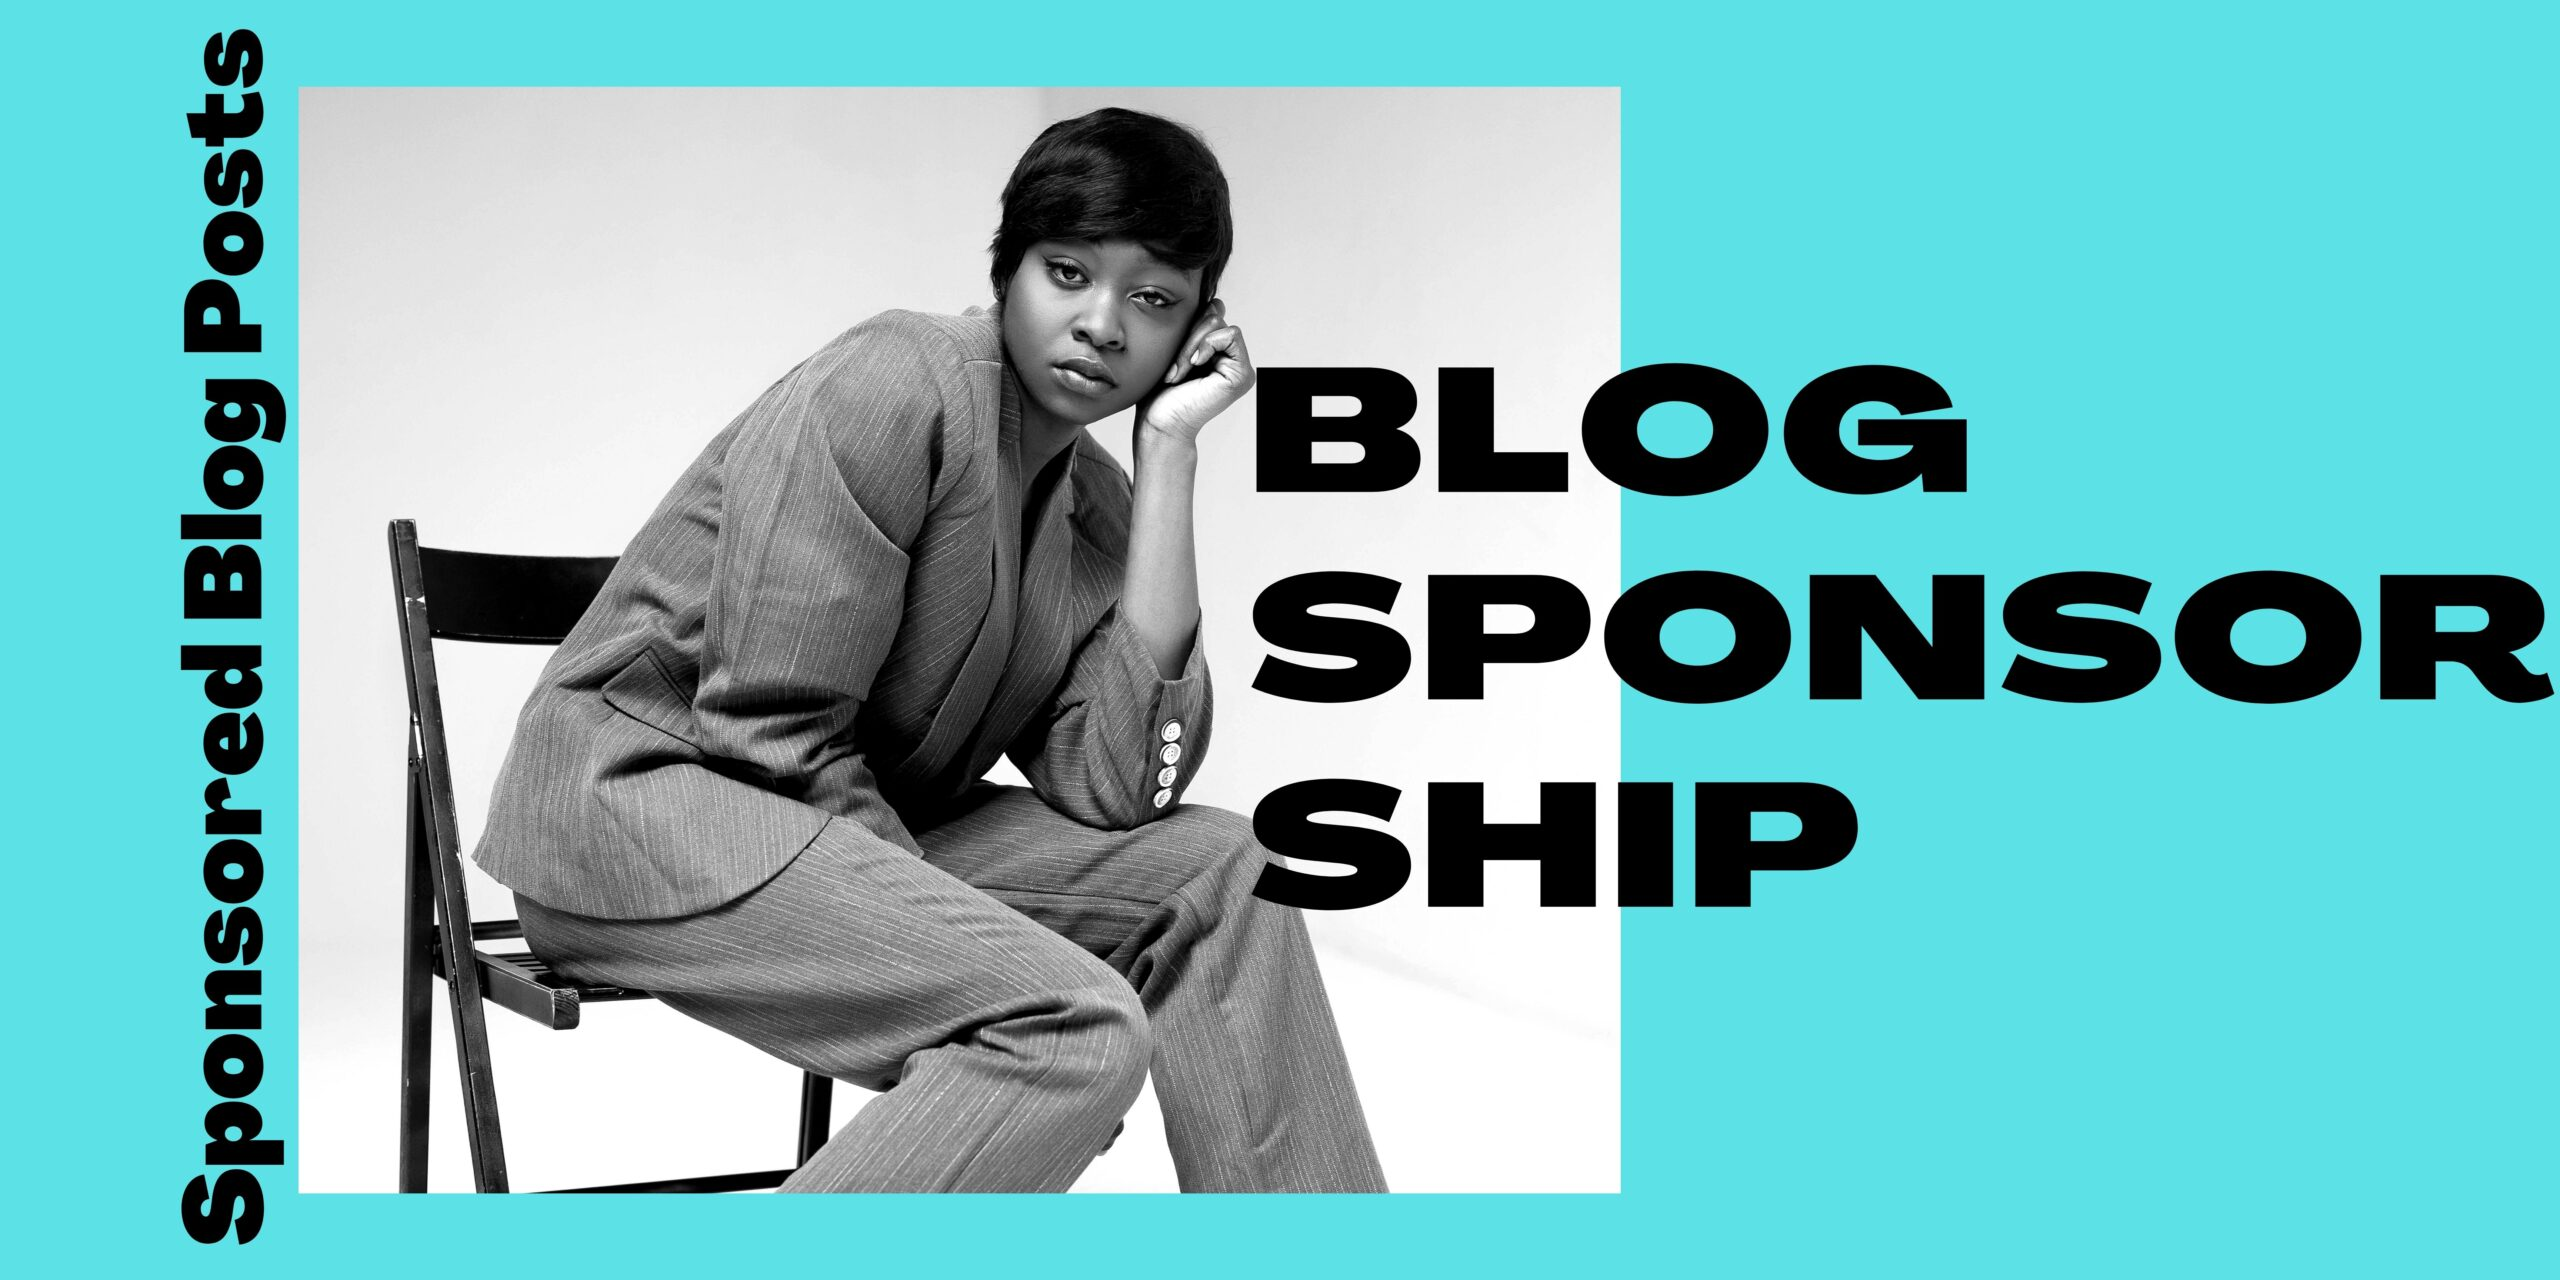 Sponsored Blog Posts and Services 1 Business ideas and resources for entrepreneurs